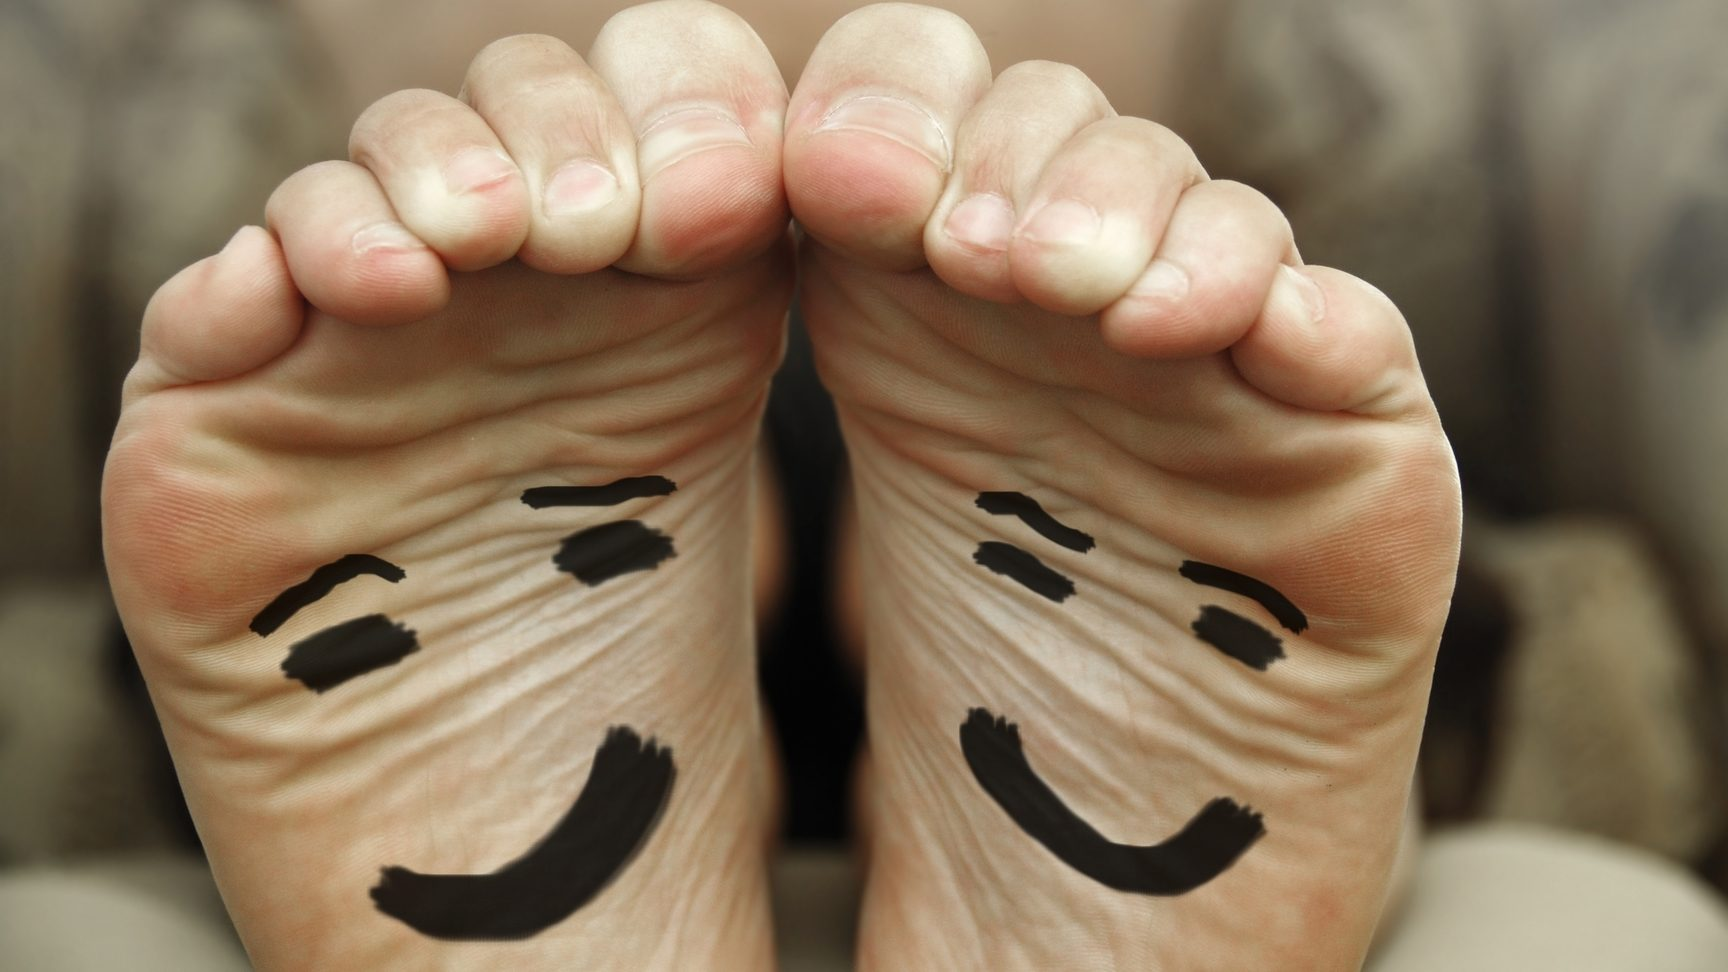 Feet with smiley faces